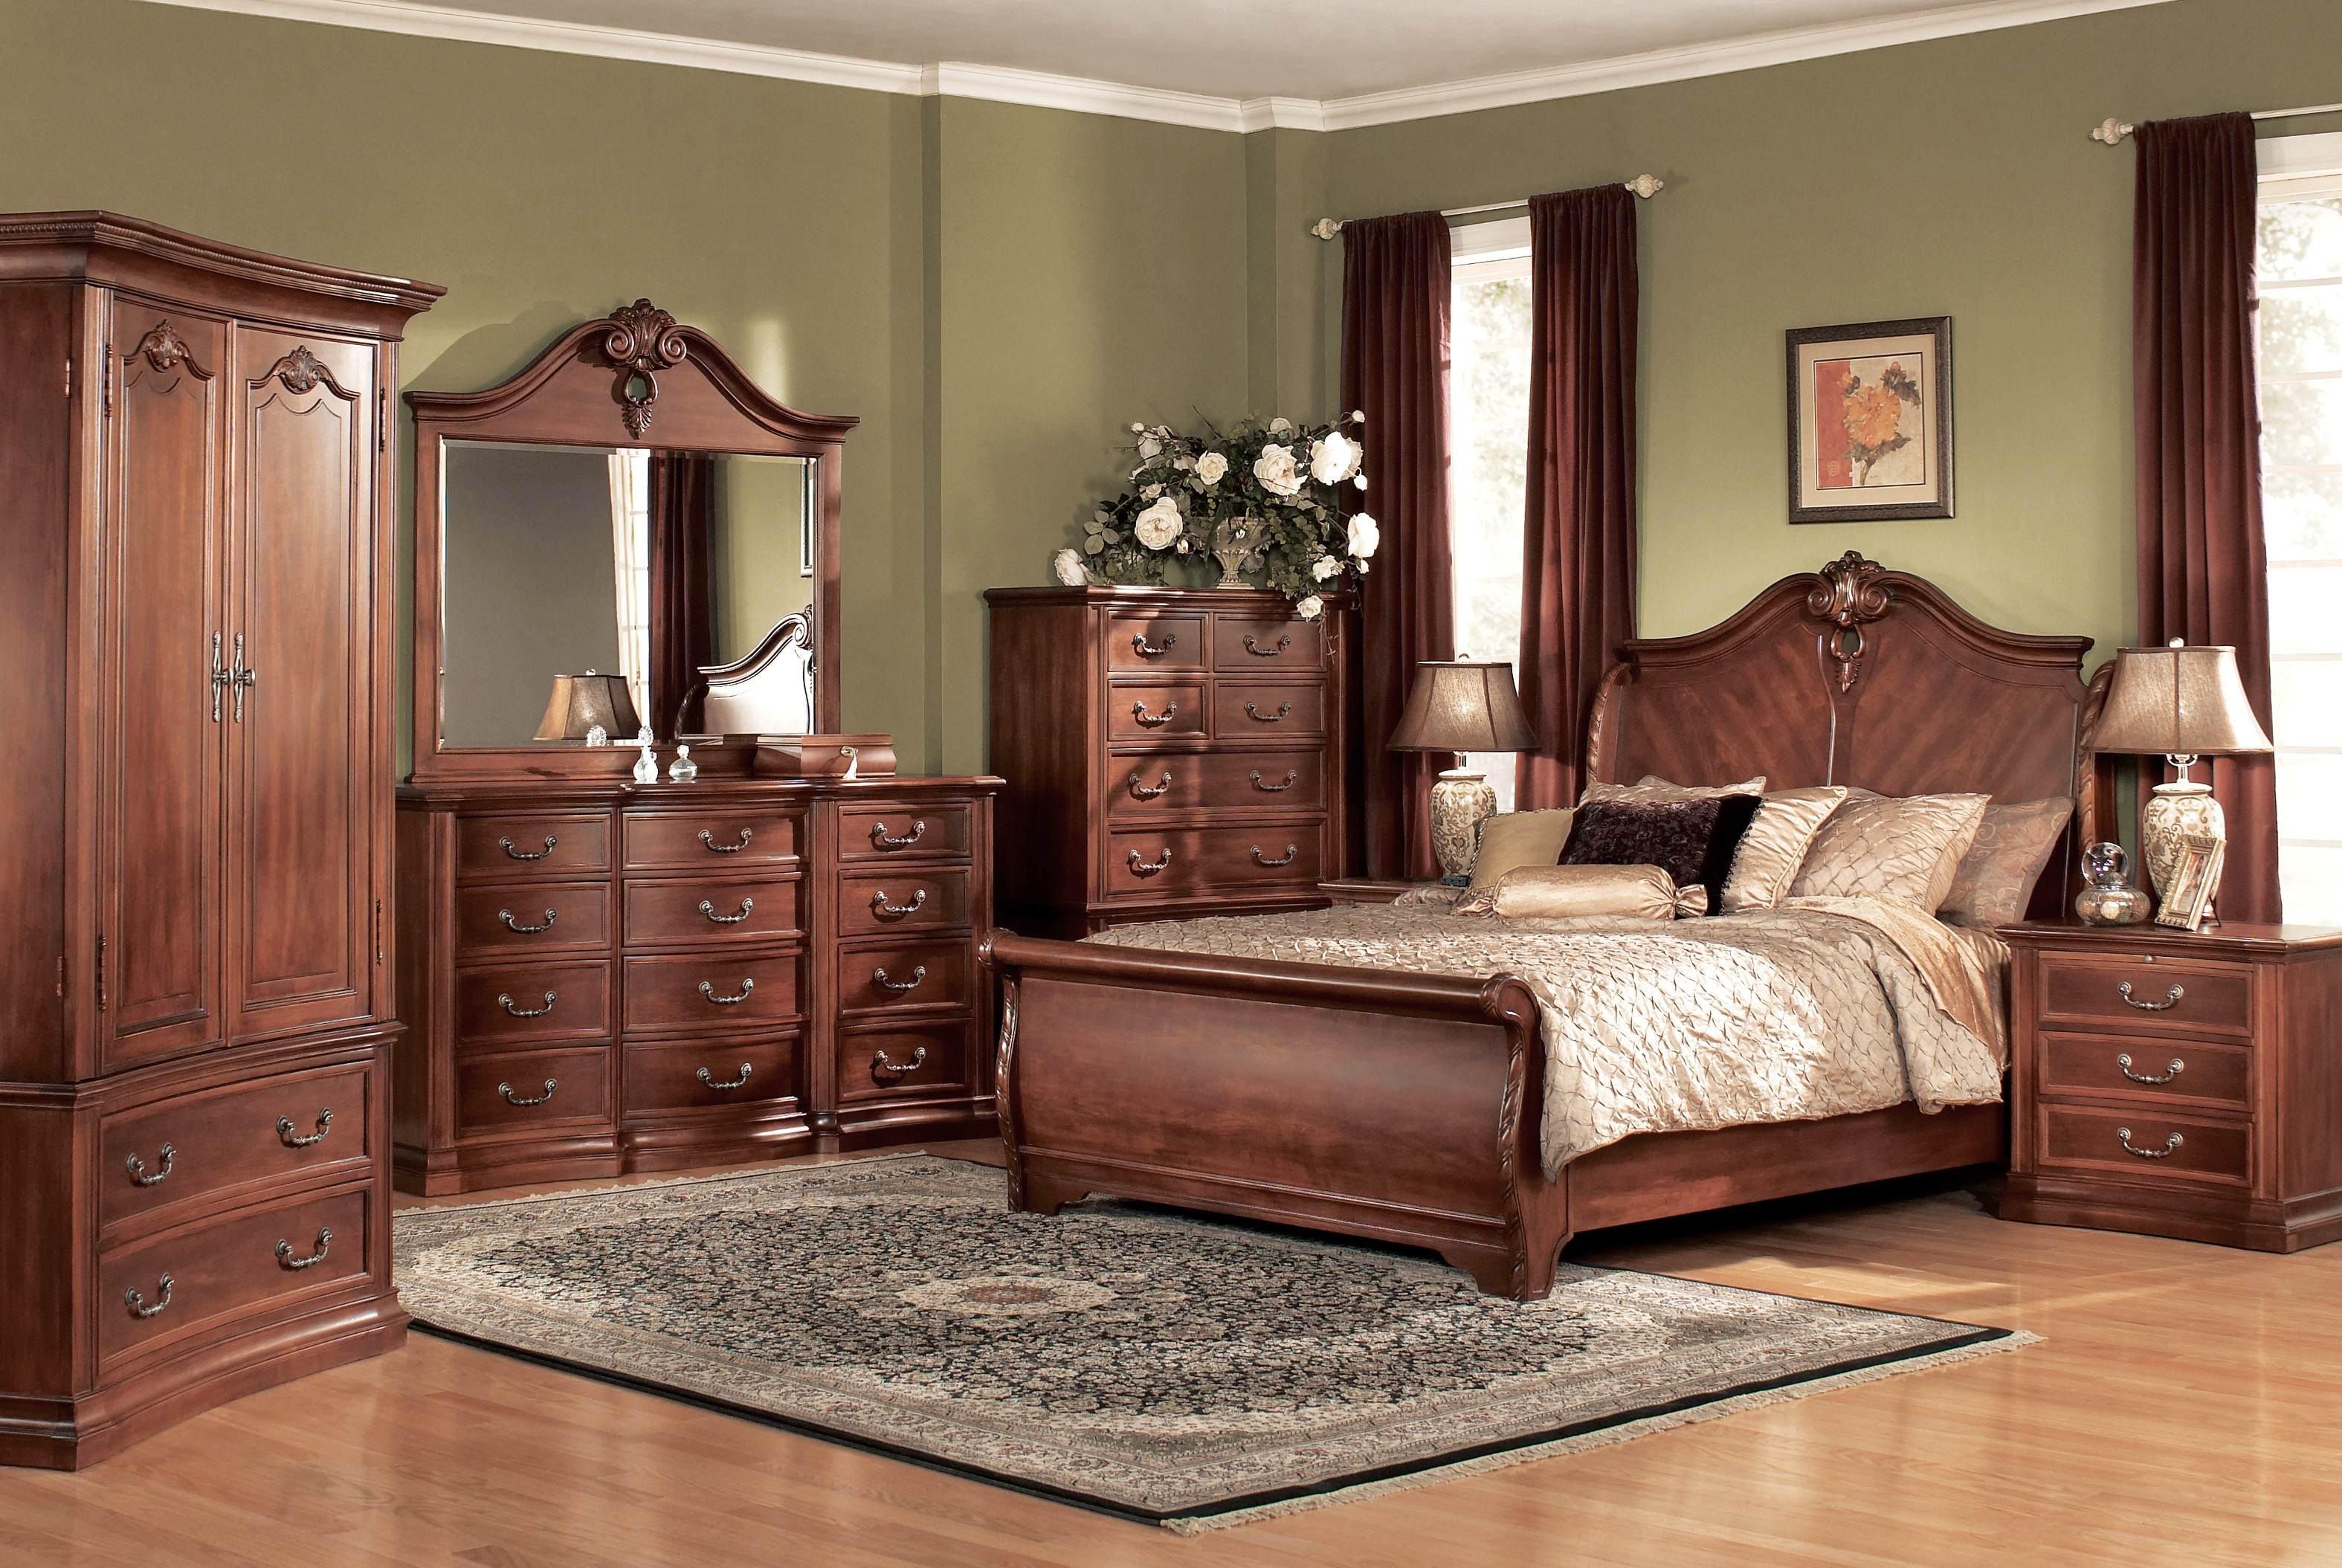 traditional bedroom styles photo - 7